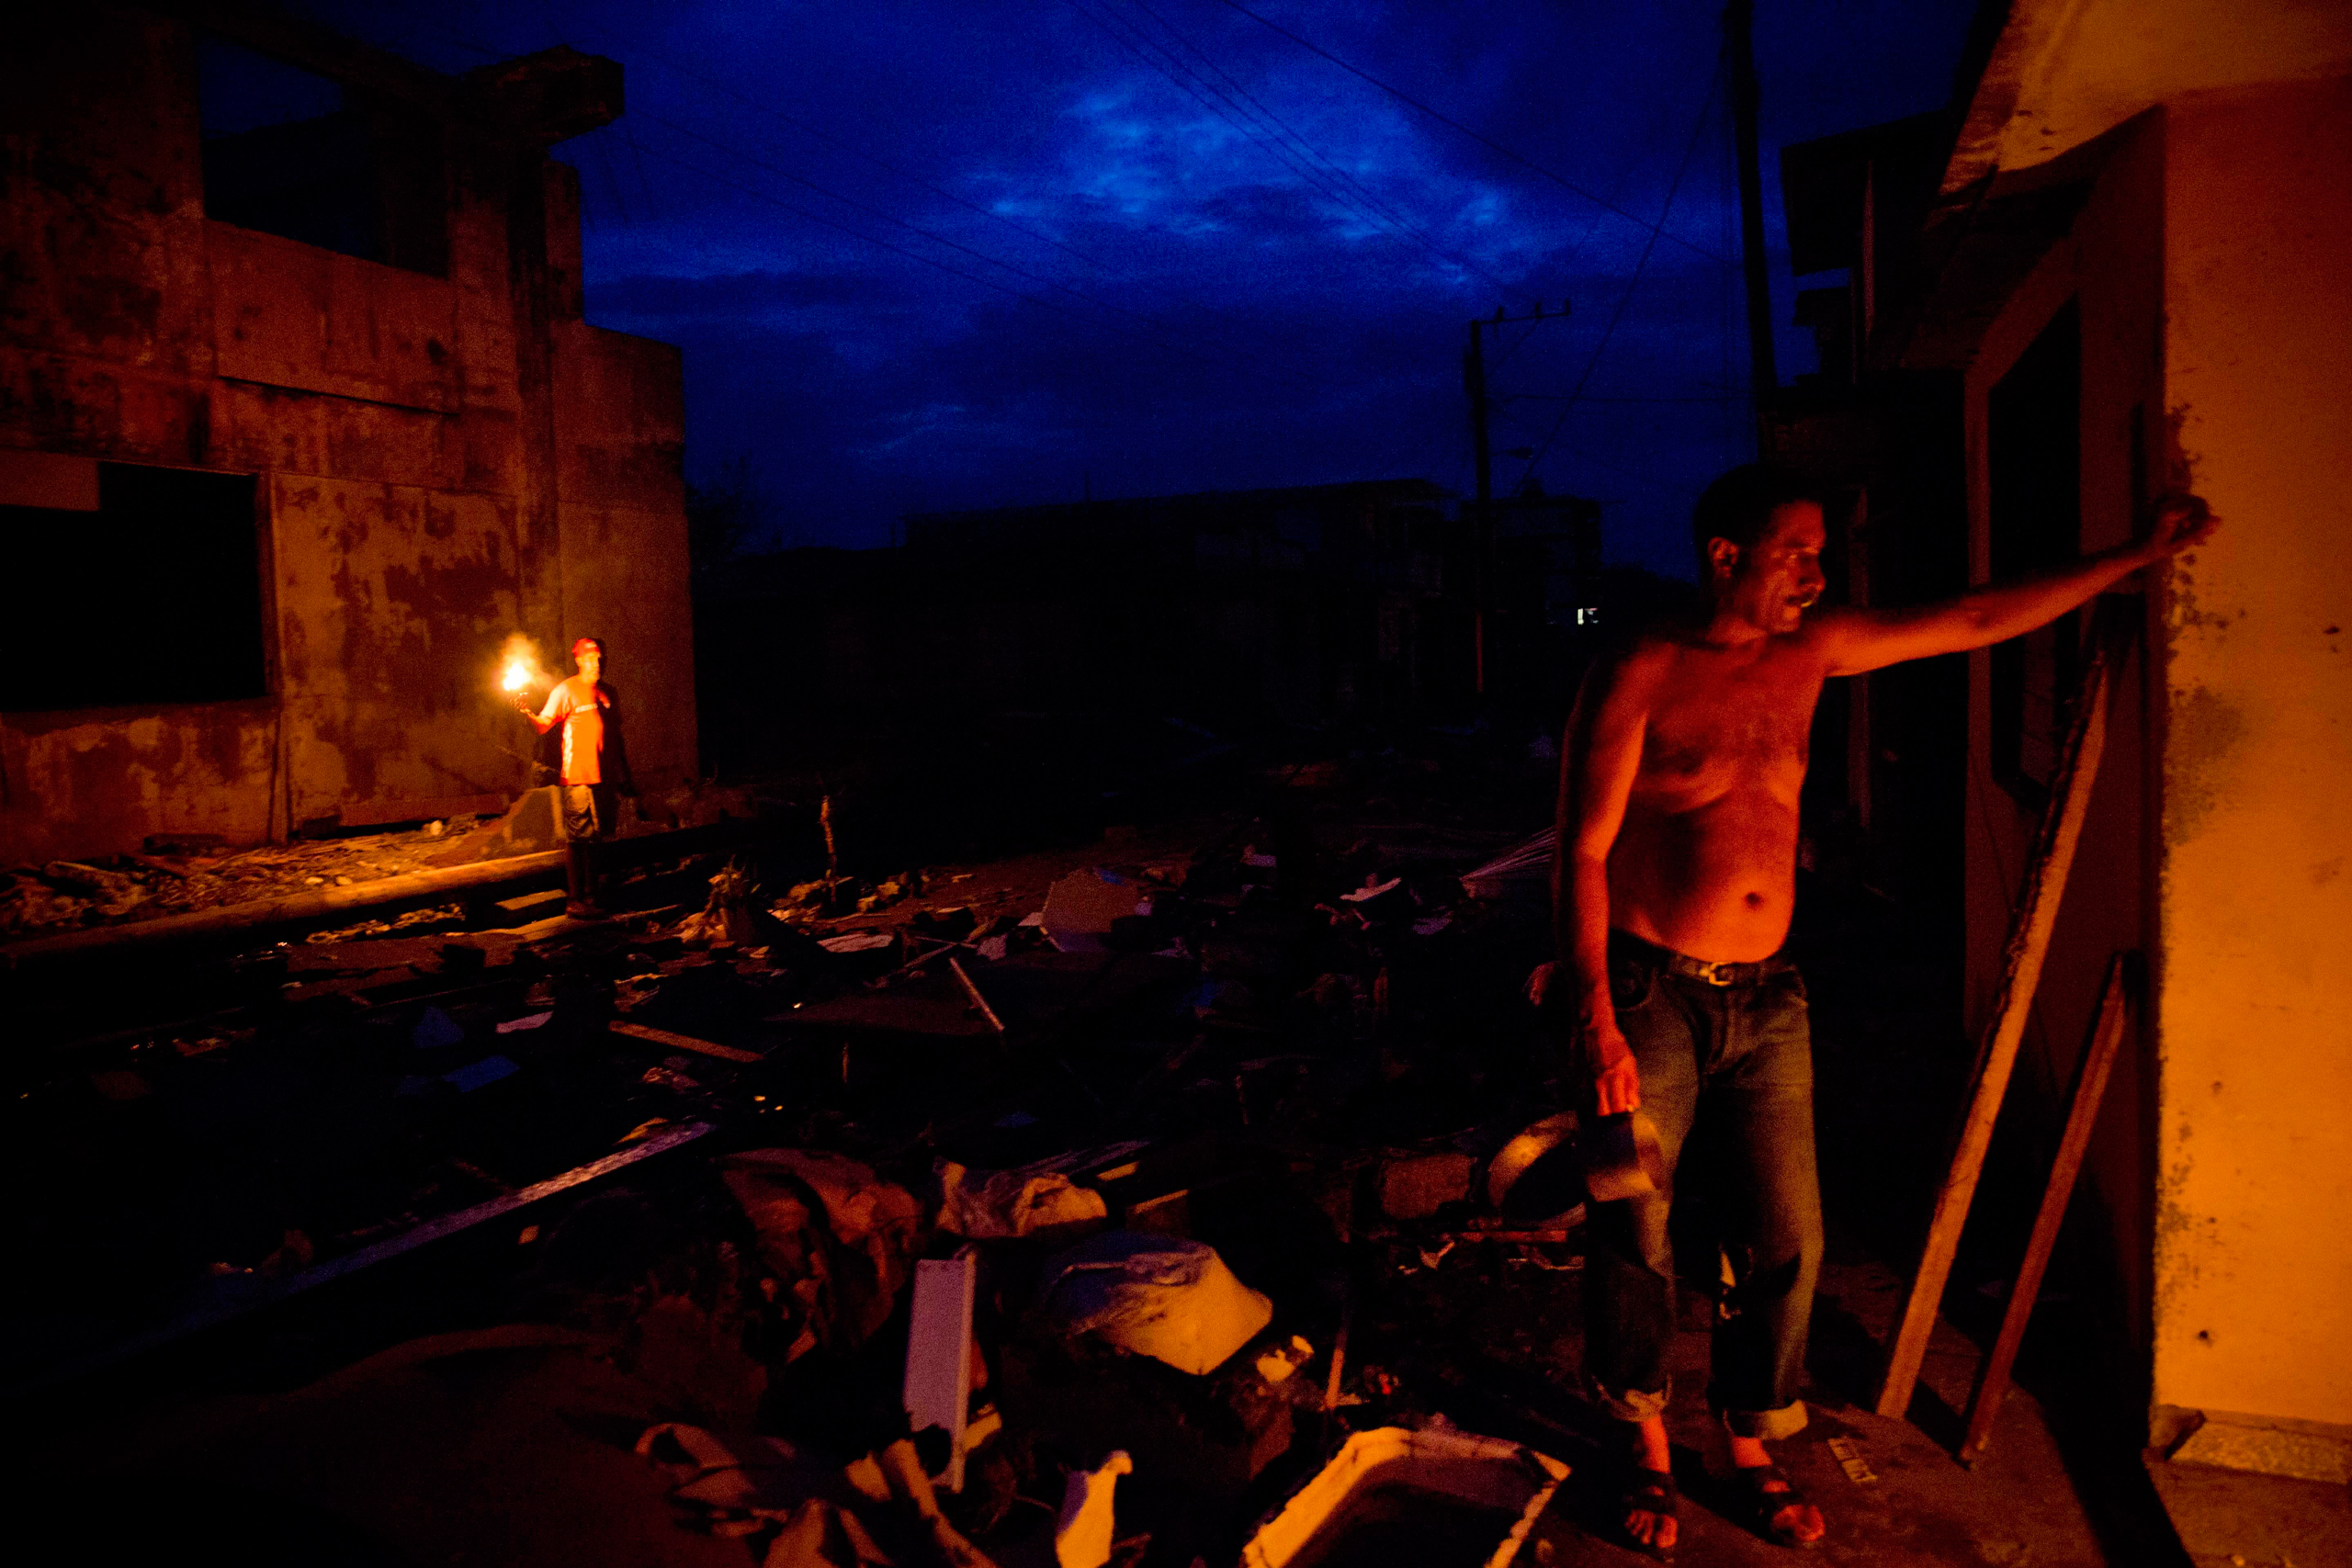 Jorge Luis Azahares waits for his wife to arrive with food amid the ruins of his home destroyed by Hurricane Matthew in Baracoa, Cuba, on Oct. 6, 2016.